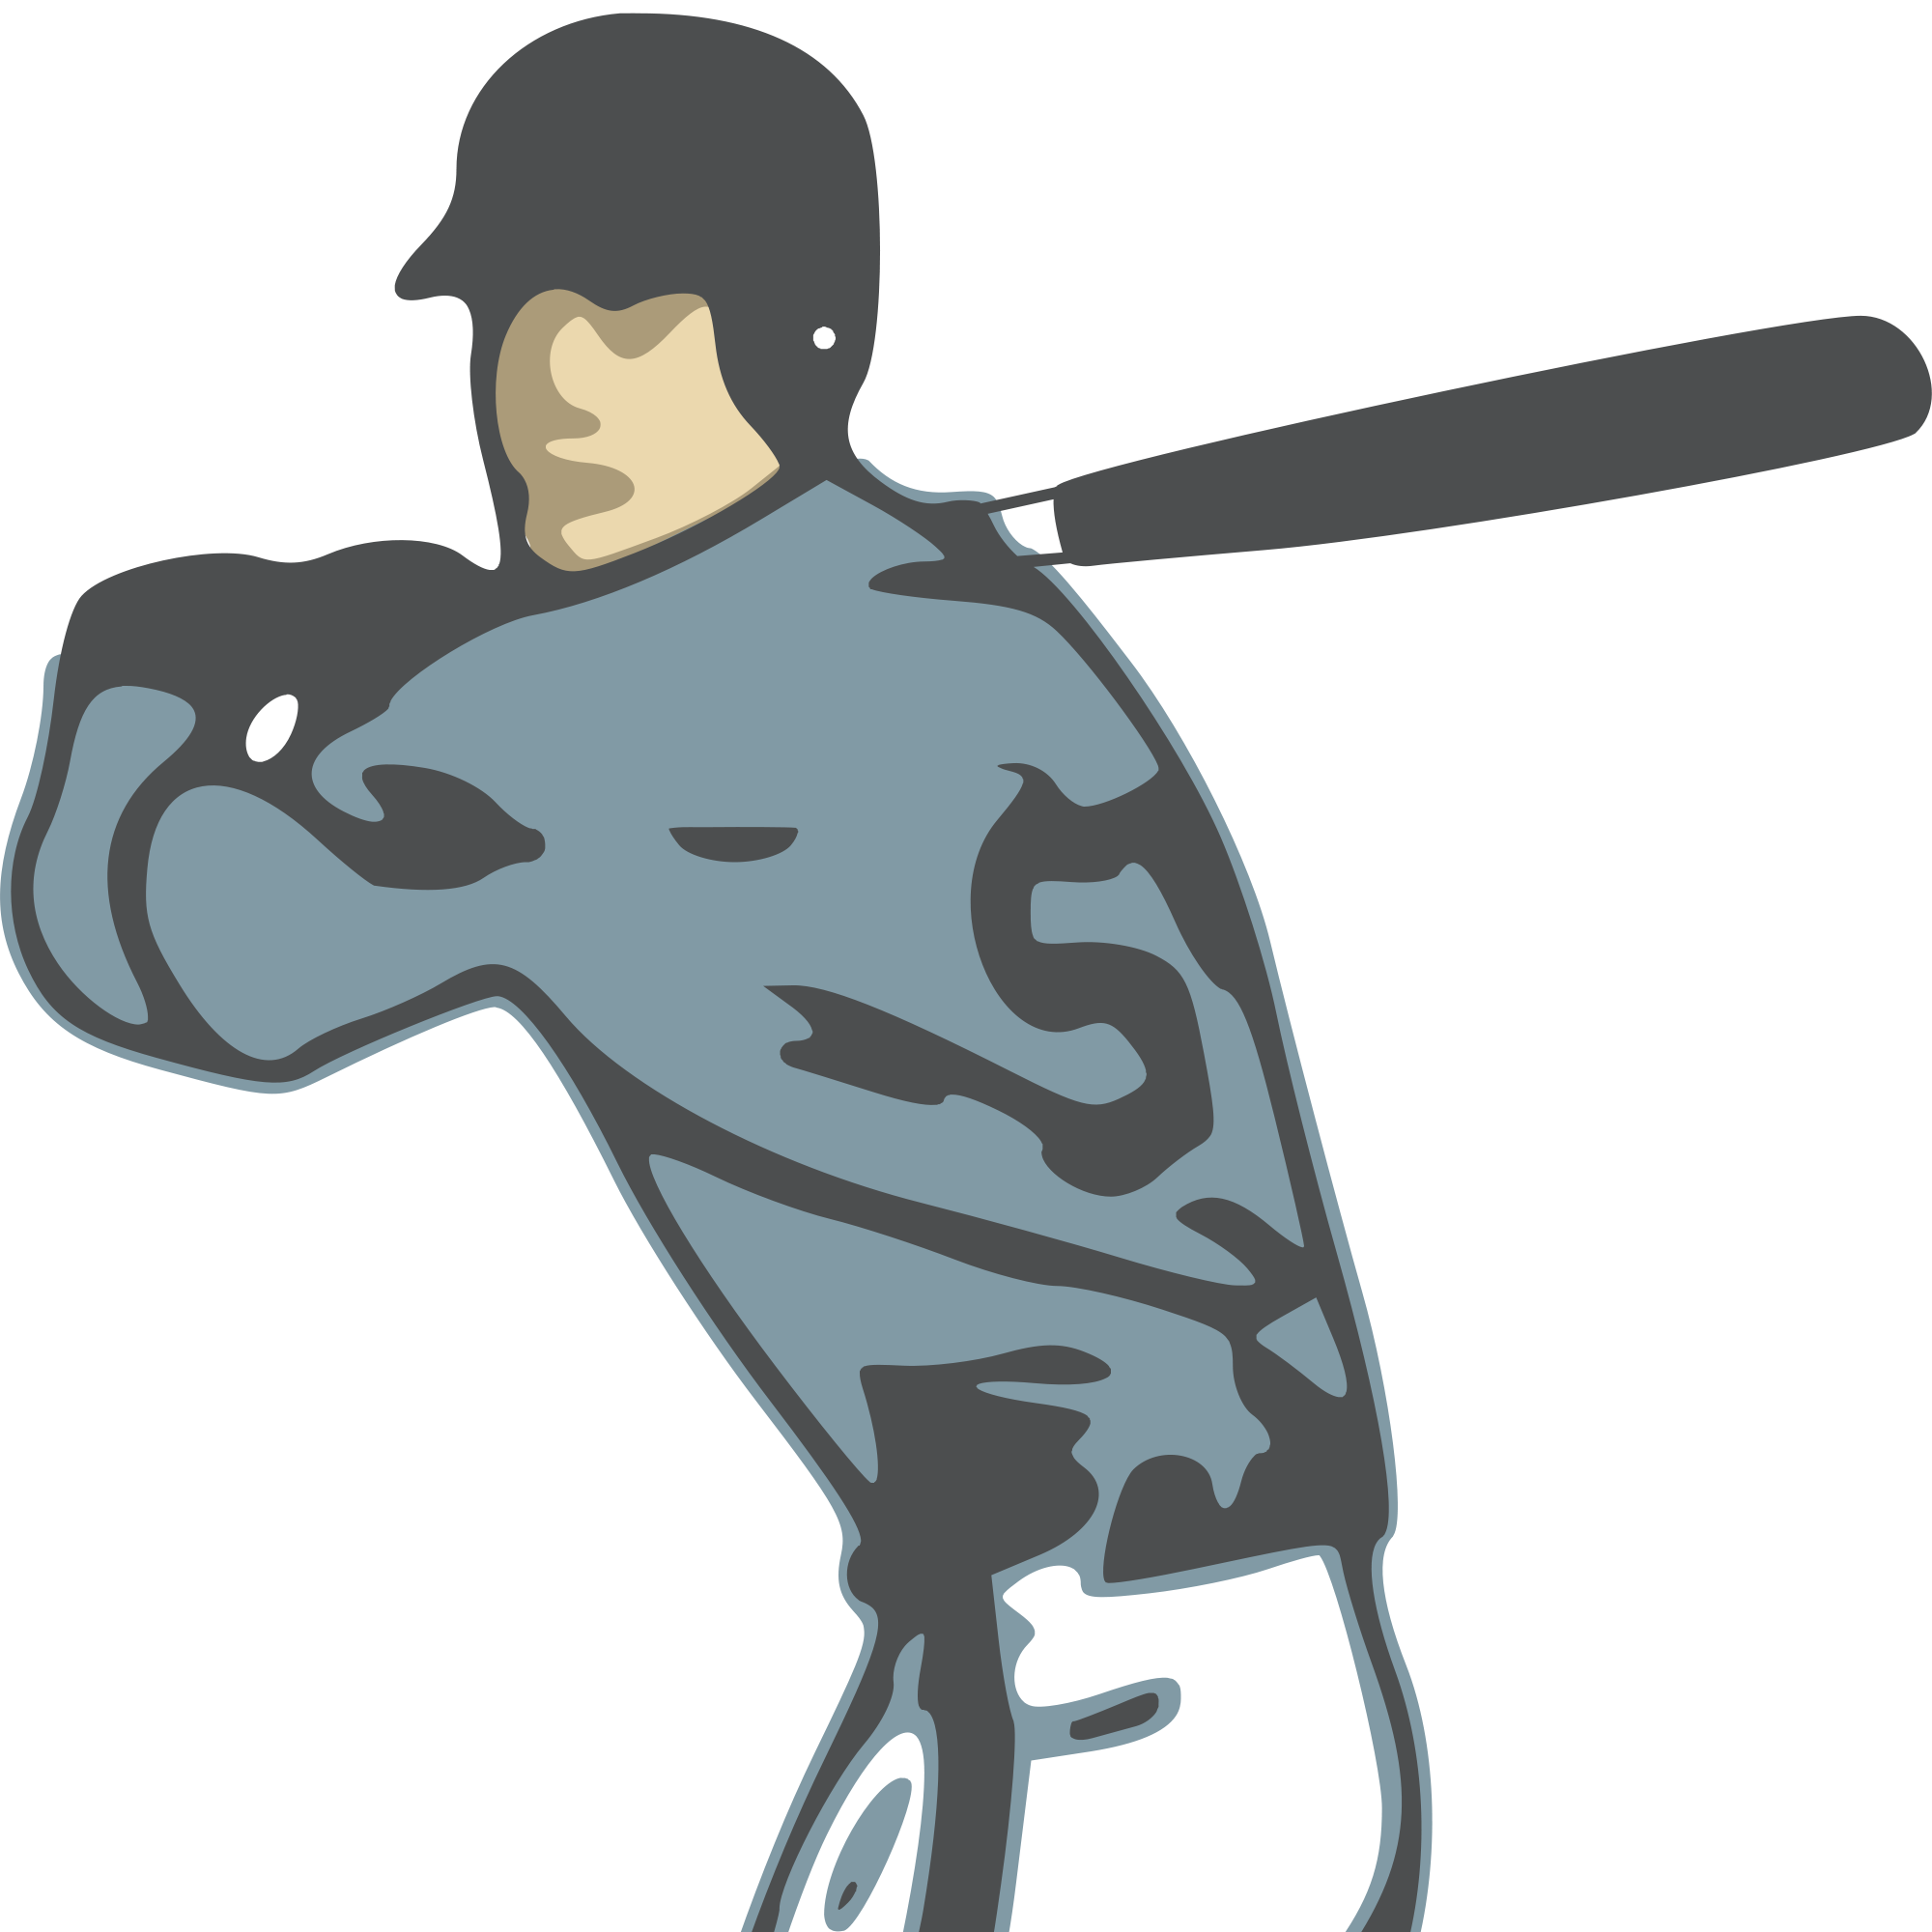 Game clipart baseball. Clip art free download